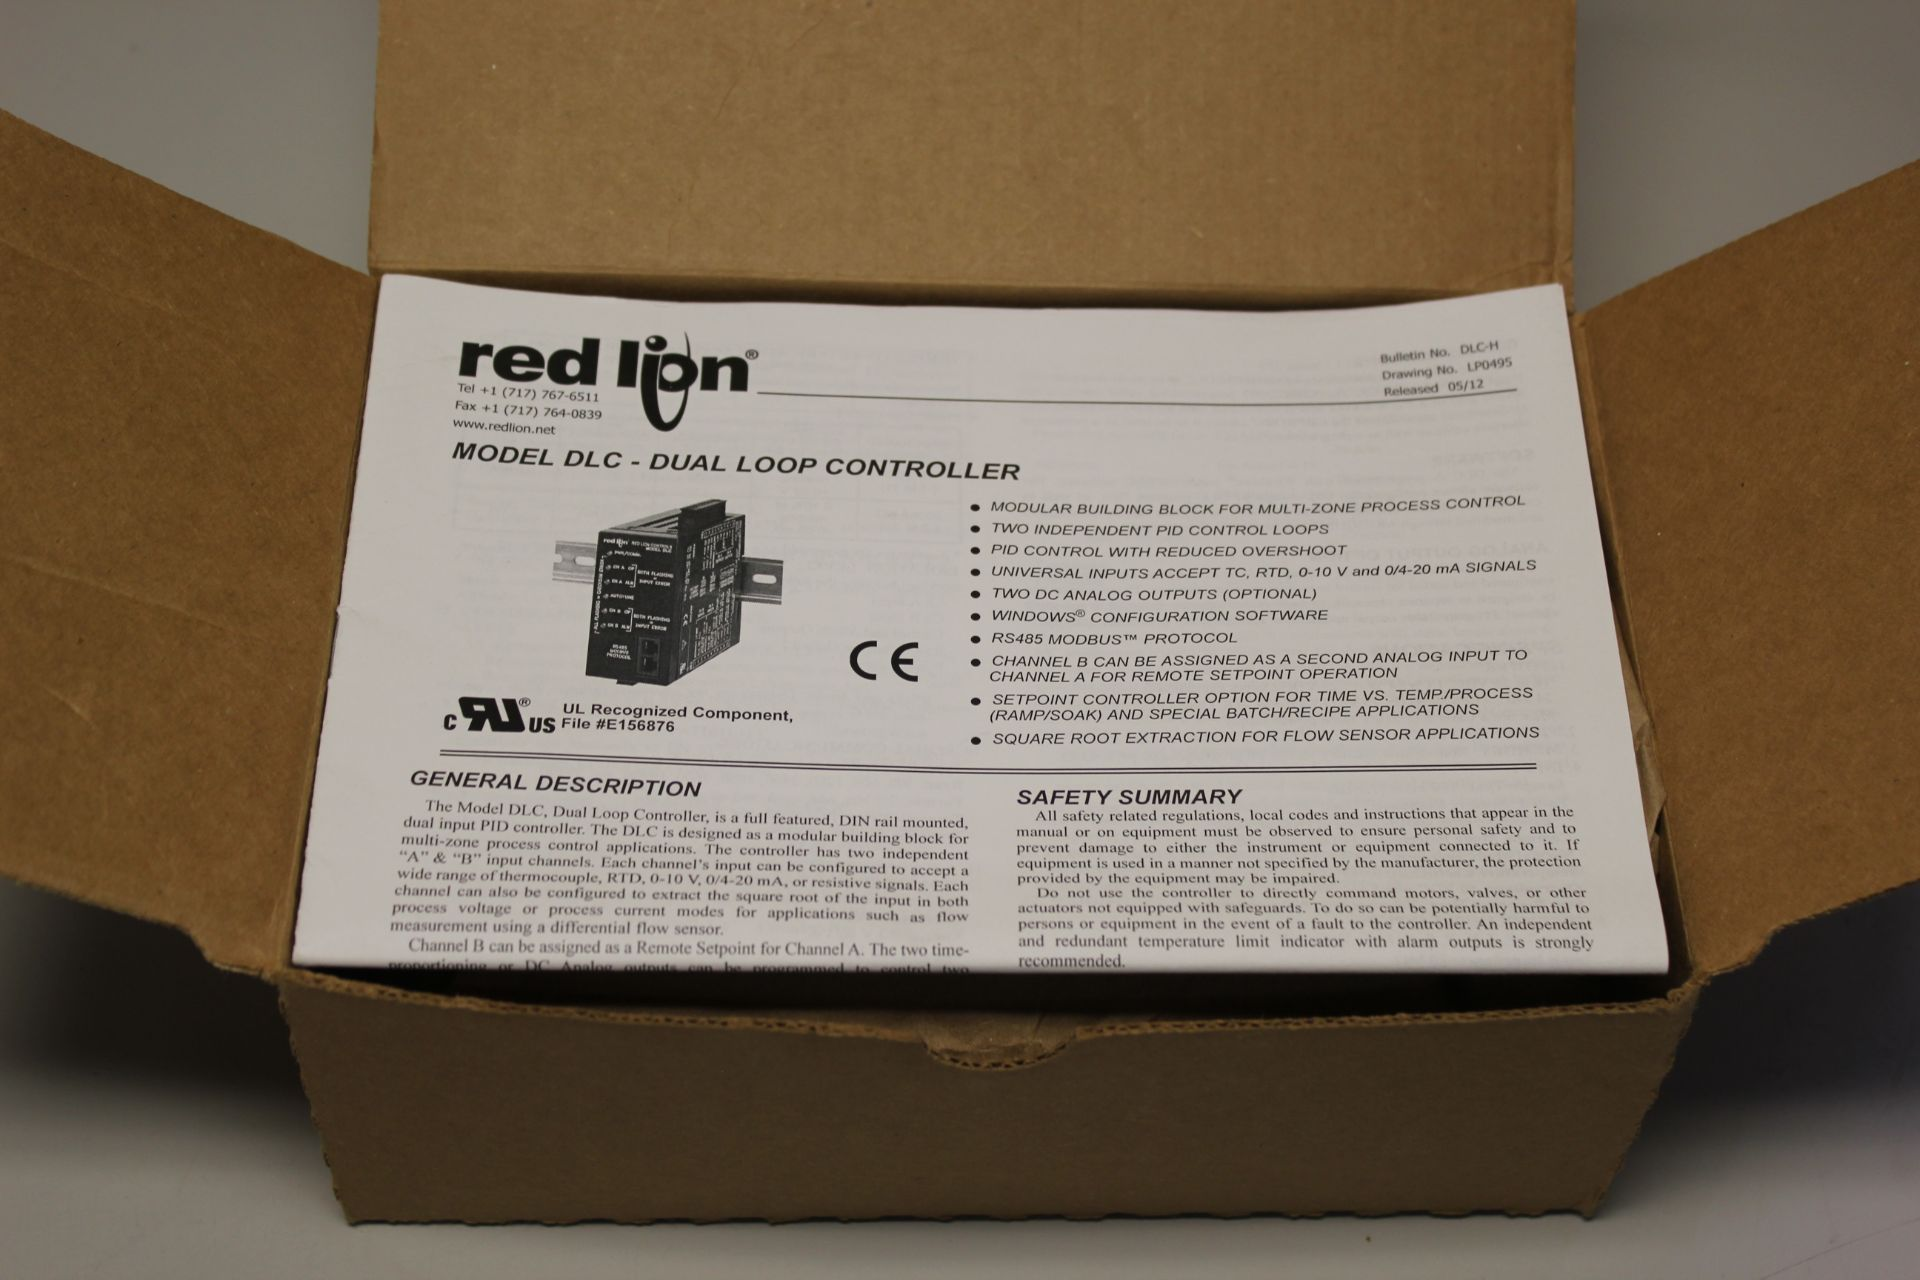 NEW RED LION DUAL LOOP PID CONTROLLER - Image 3 of 6